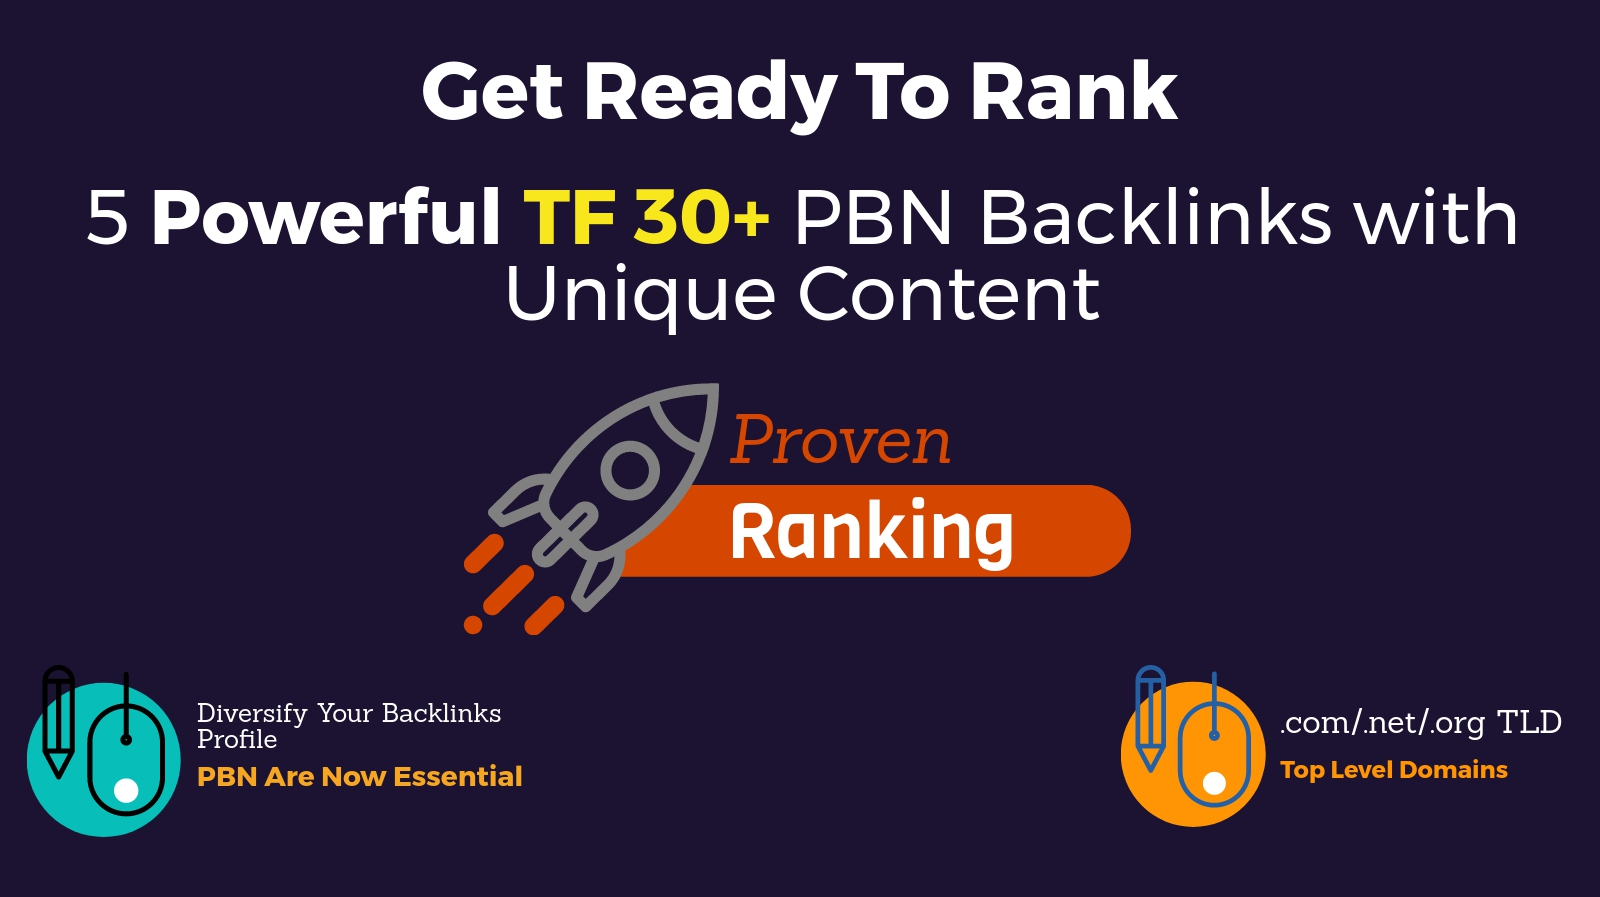 EliteX 5 Homepage TF upto 30+ Powerful PBN Backlinks Posts V6 - Proven Ranking